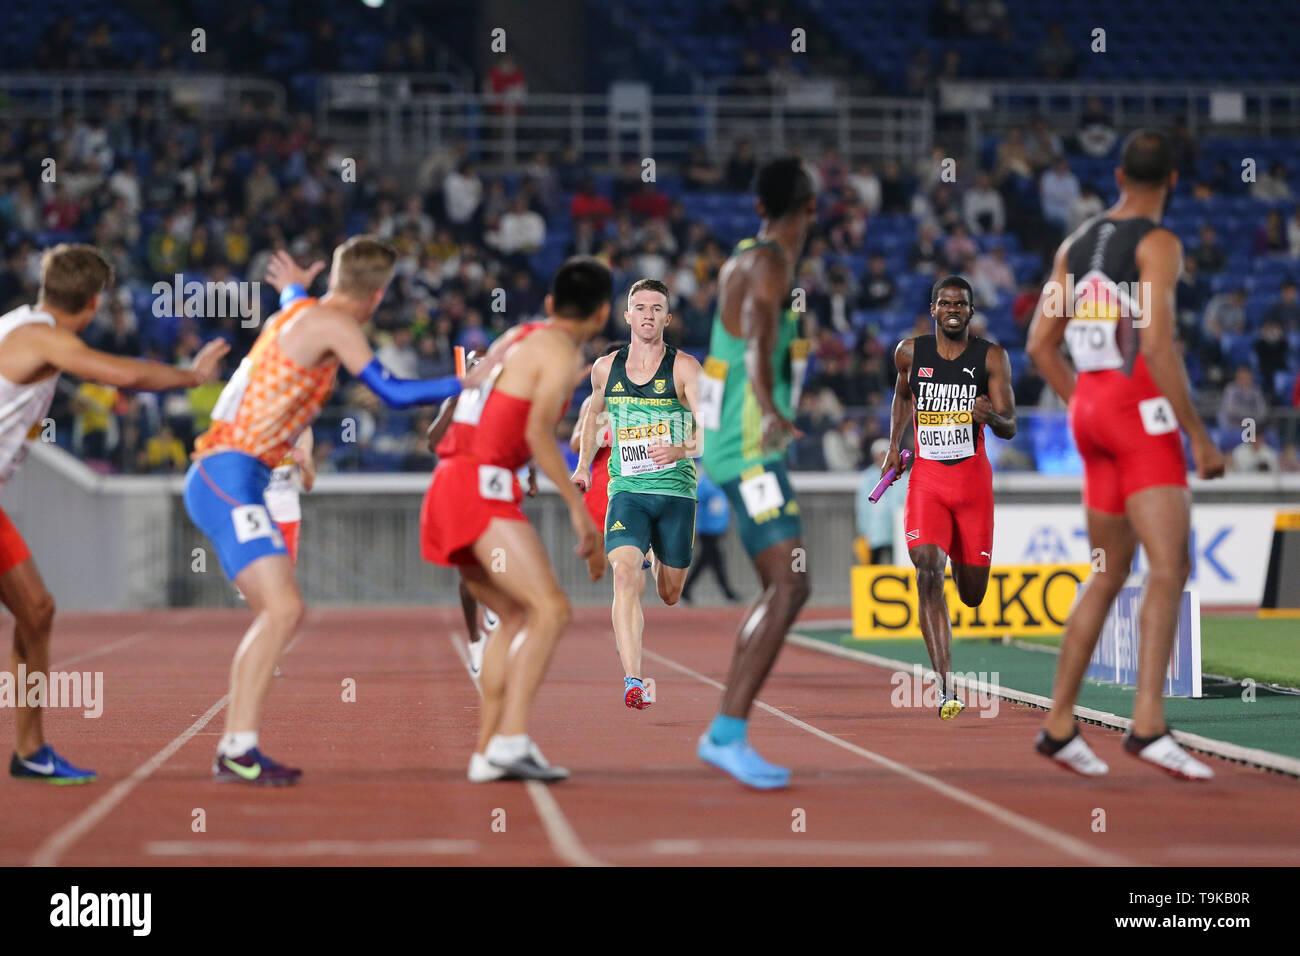 YOKOHAMA, JAPAN - MAY 10: Pieter Conradie of South Africa during Day 1 of the 2019 IAAF World Relay Championships at the Nissan Stadium on Saturday May 11, 2019 in Yokohama, Japan. (Photo by Roger Sedres for the IAAF) - Stock Image